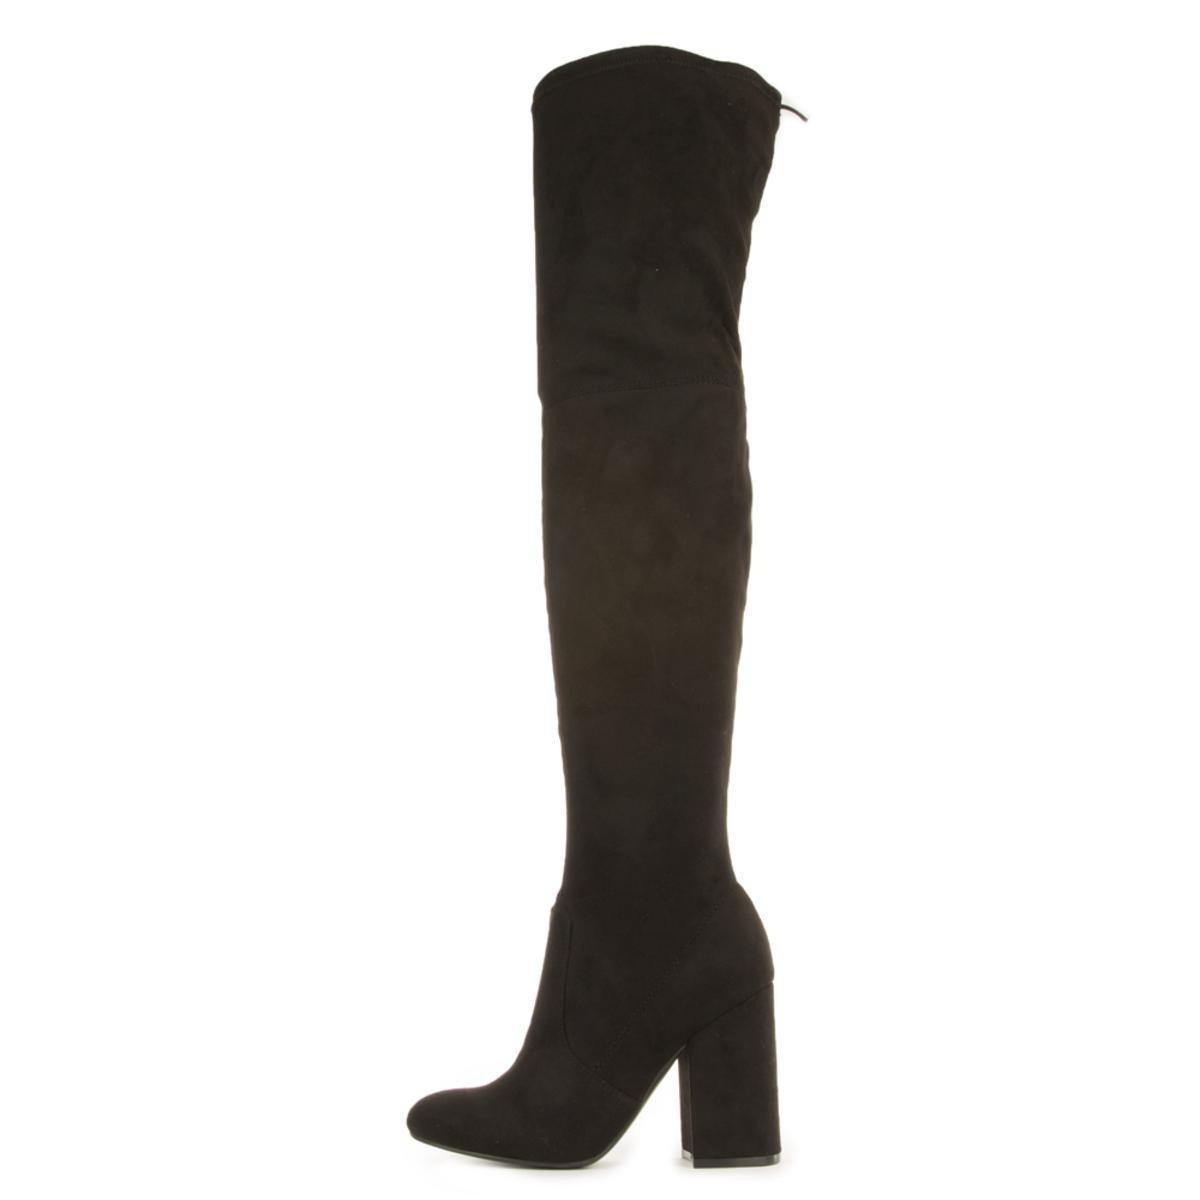 a024fca3776 Lyst - Steve Madden Norri Black Thigh High Heeled Boots in Black